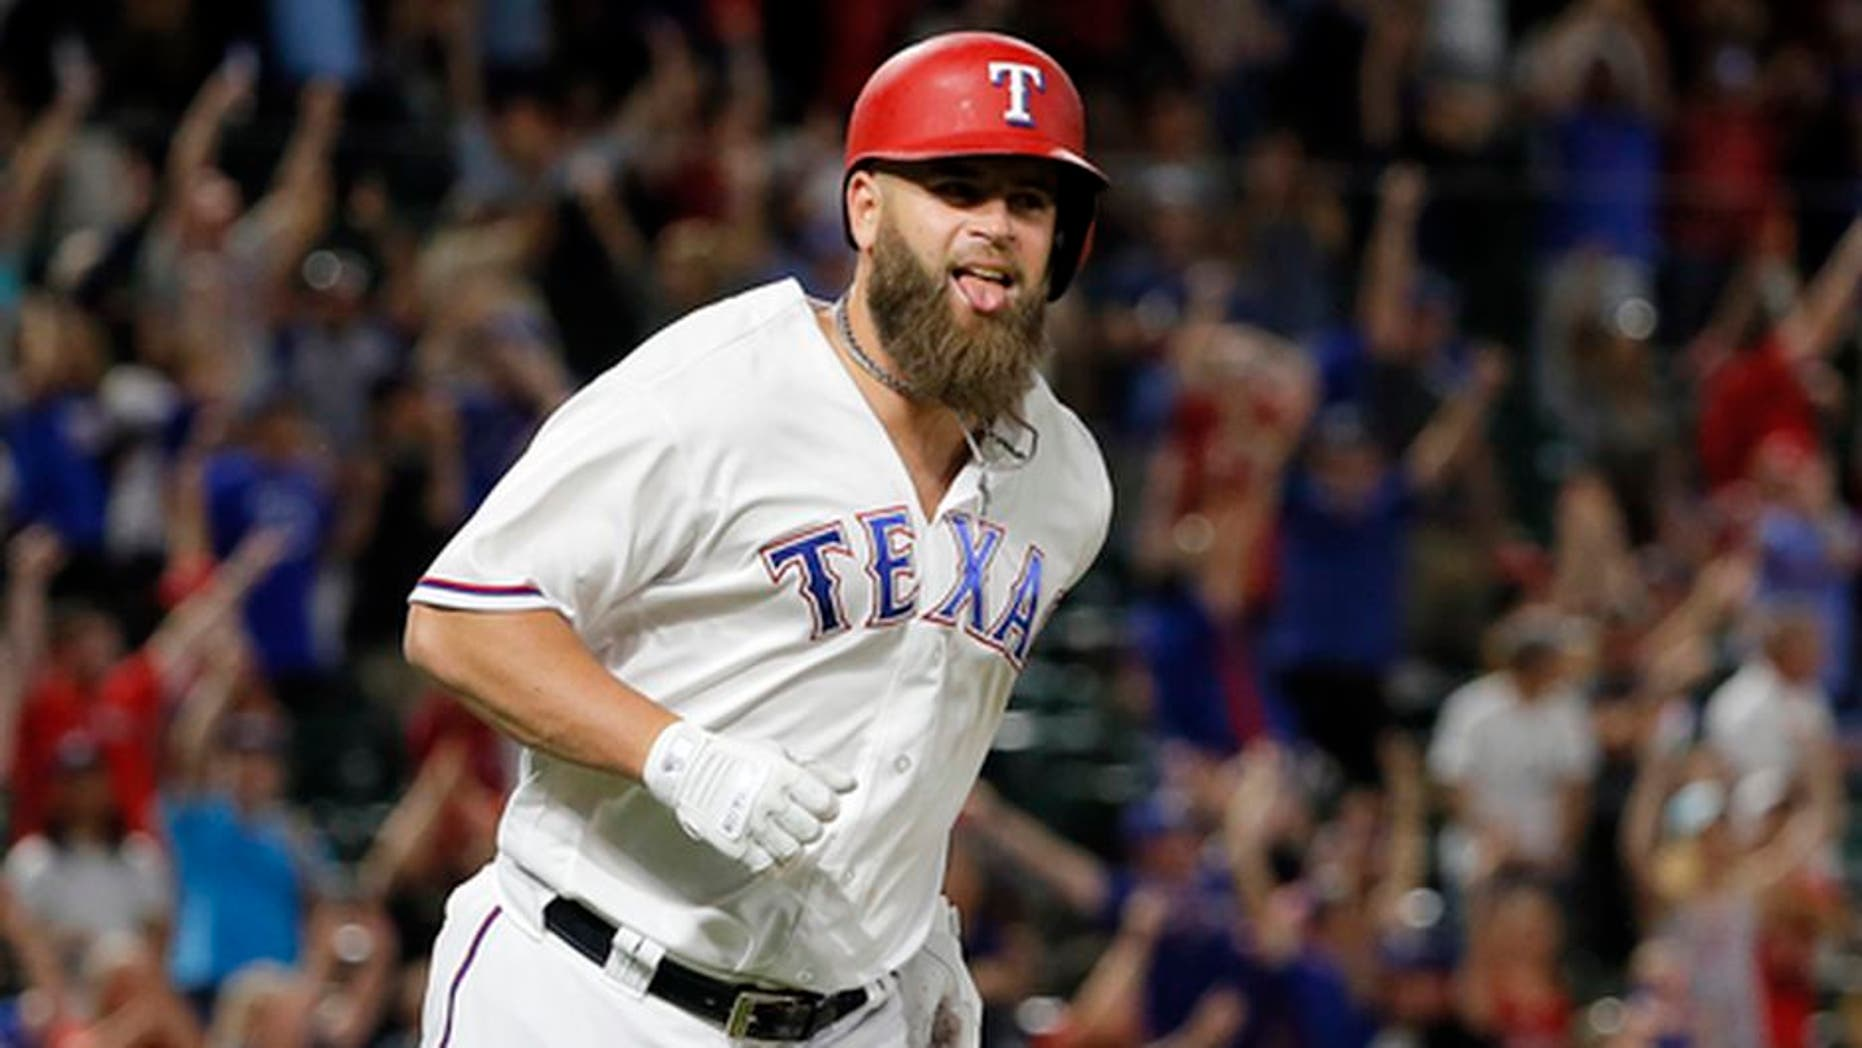 Texas Rangers' Mike Napoli celebrates as he runs the bases after hitting a game-winning three-run home run off San Diego Padres reliever Brandon Maurer during the ninth inning of a baseball game, Thursday, May 11, 2017, in Arlington, Texas. The Rangers won 5-2. (AP Photo/Tony Gutierrez)